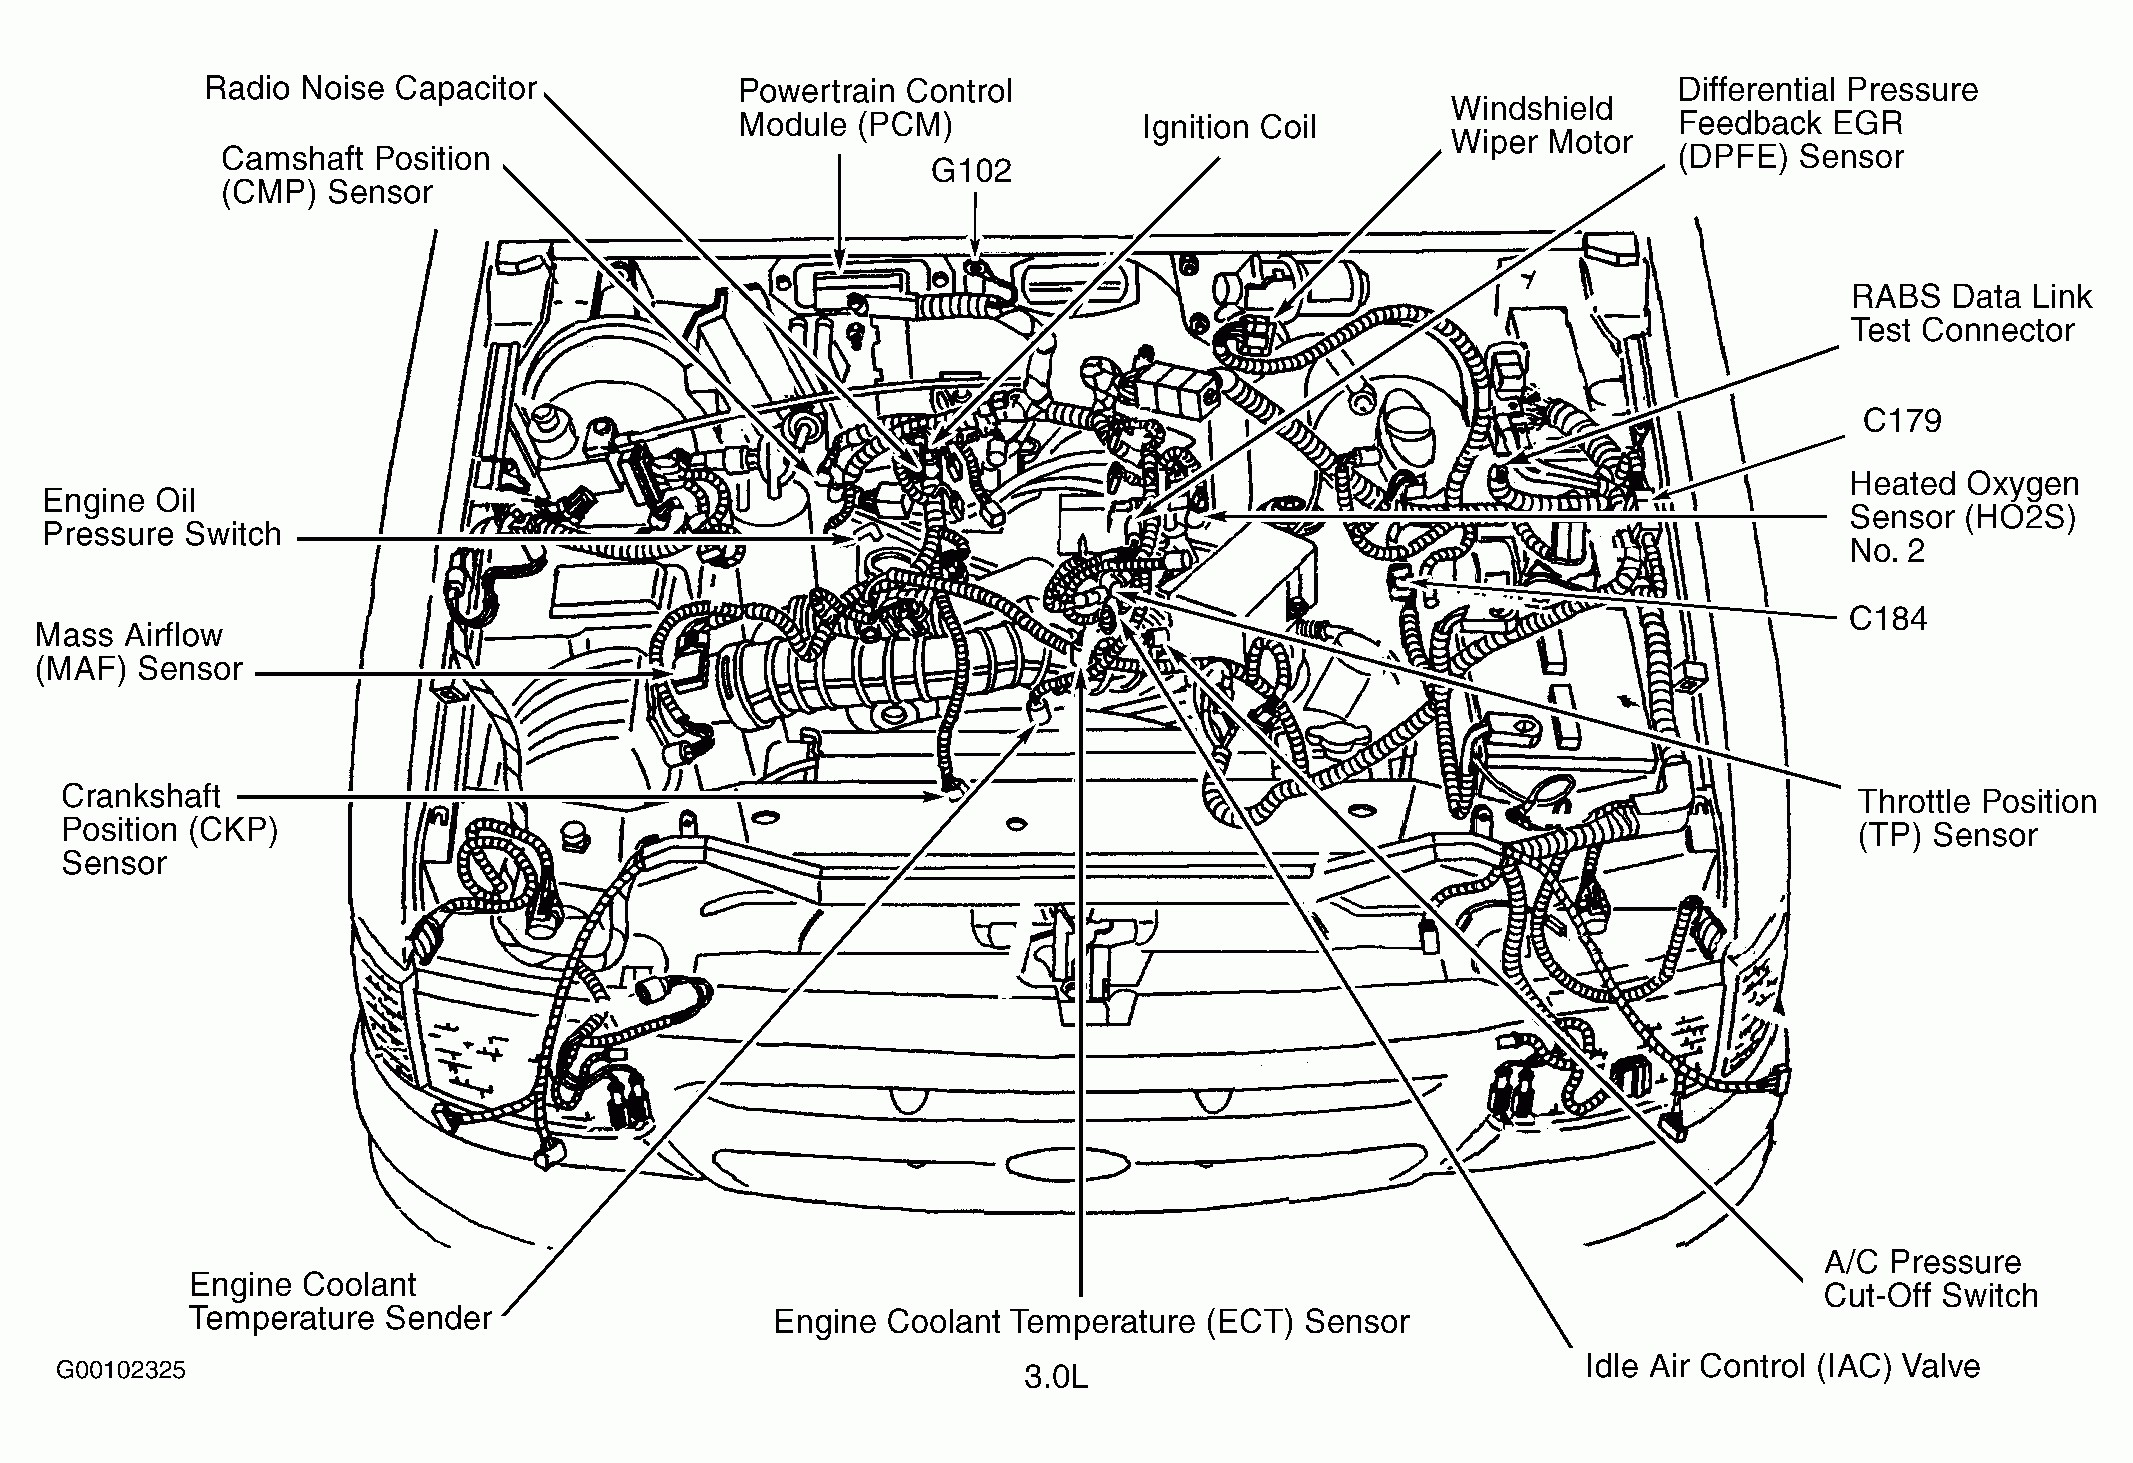 94 ford Ranger Engine Diagram ford 3 0 Engine Diagrams Wiring Diagram Pass Of 94 ford Ranger Engine Diagram Mercruiser 5 0 Wiring Diagram ford Wiring Diagram Pass